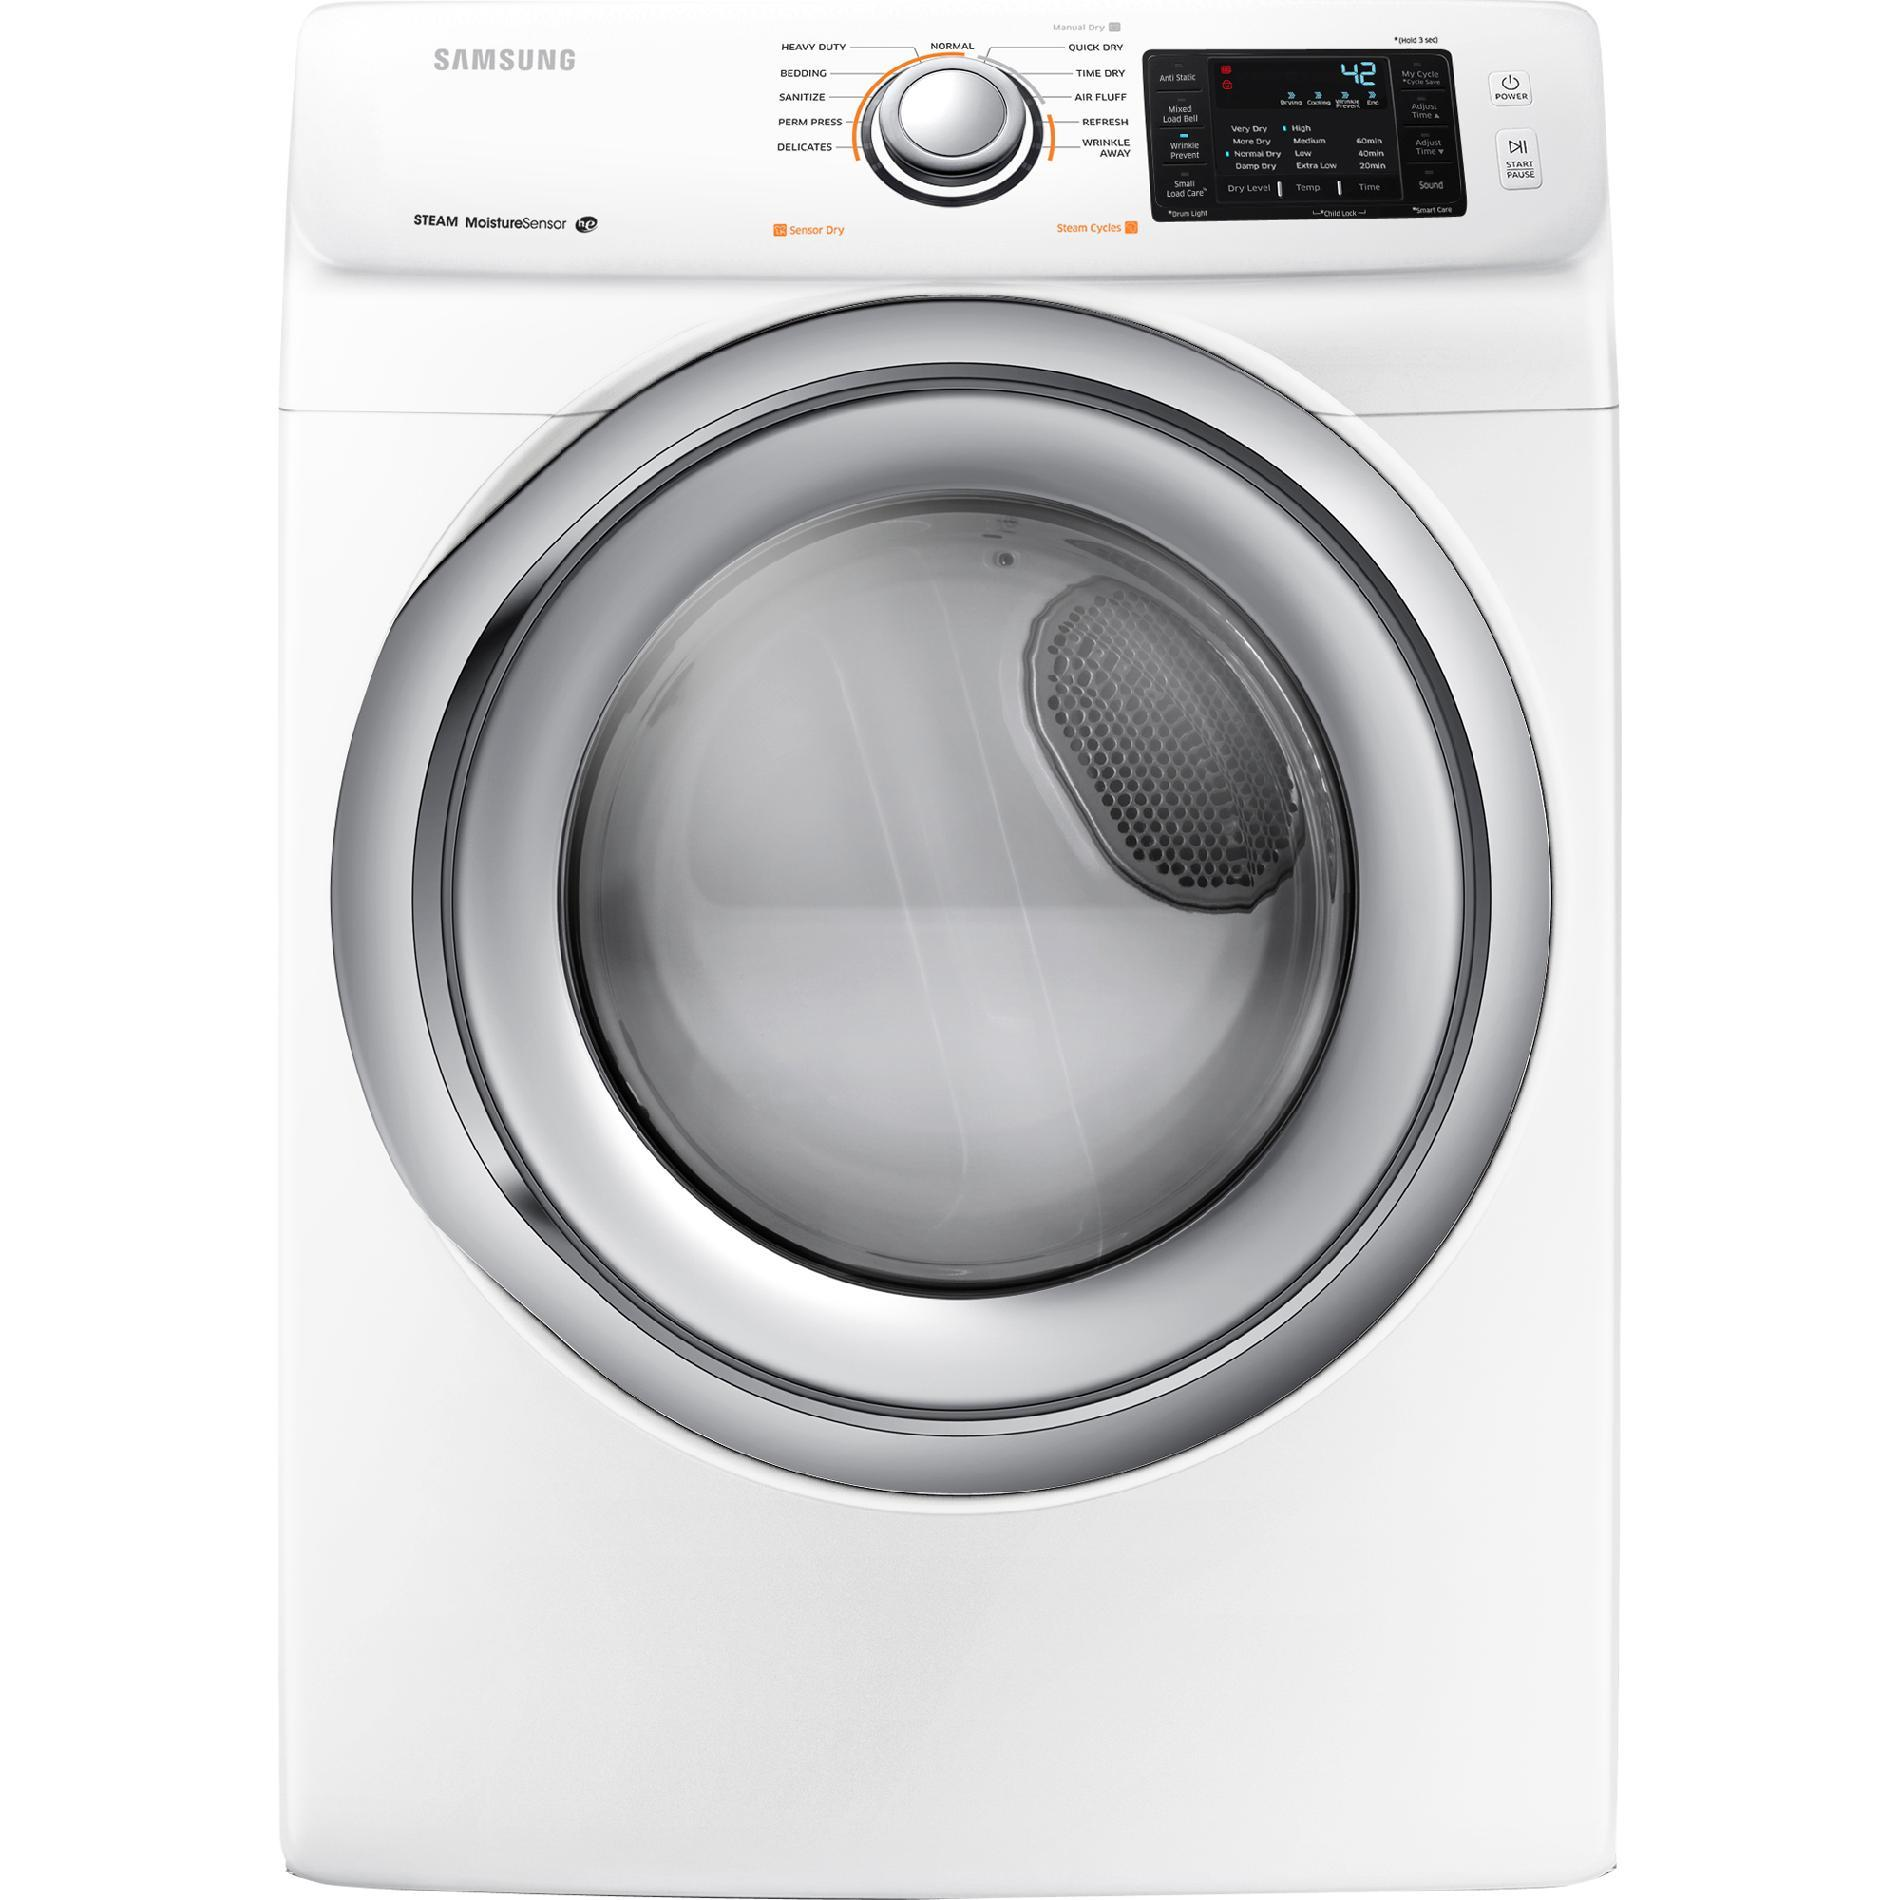 Samsung DV42H5200EW 7.5 cu. ft. Electric Dryer - White